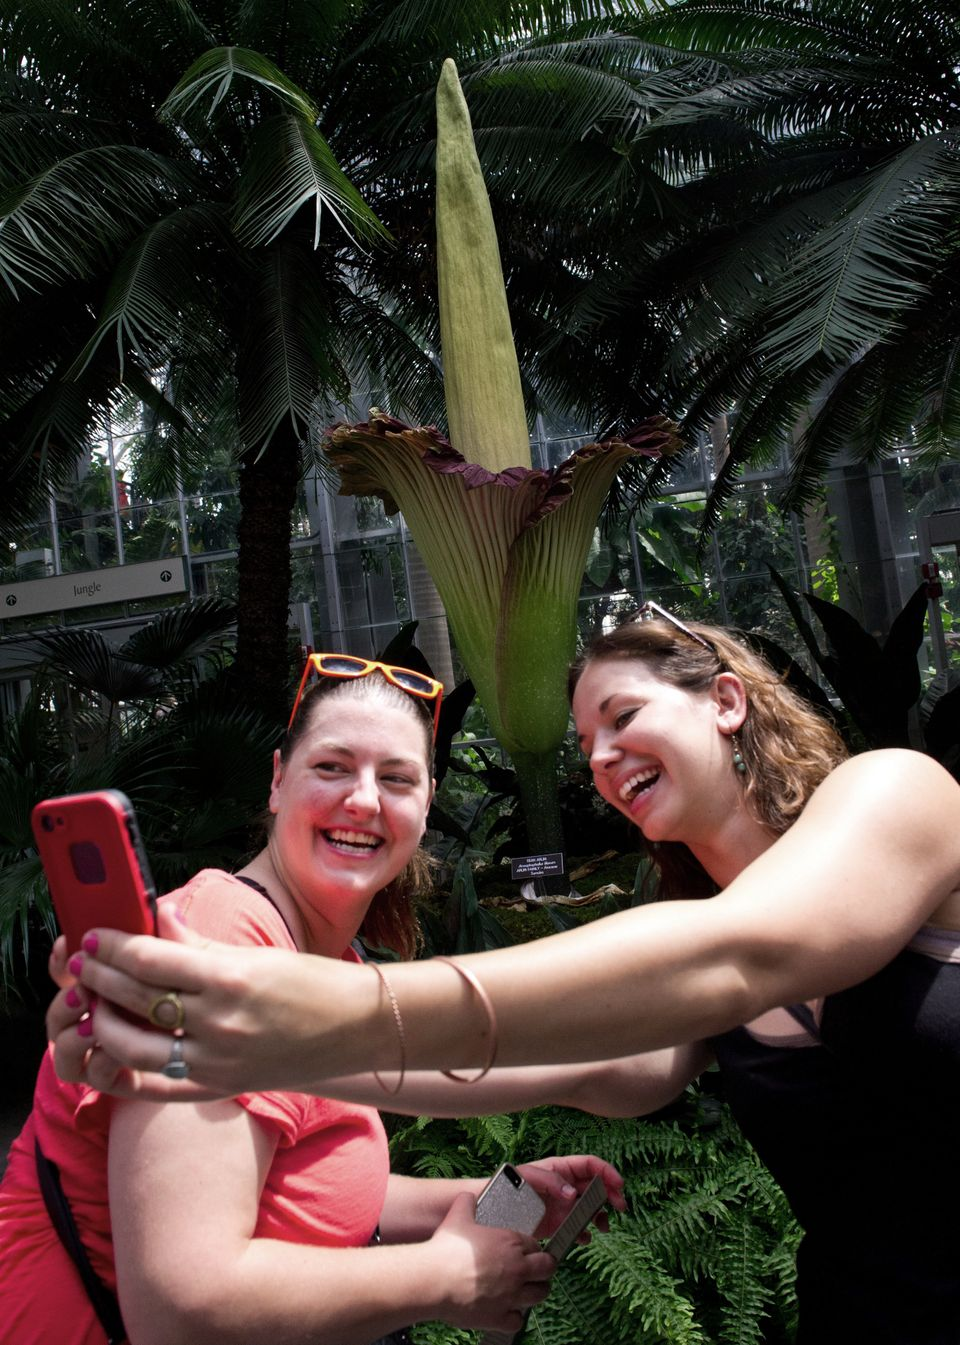 Carrie Dgzwil (left) and Casey Dumasius take their photo in front of the titan arum plant (Amorphophallus titanum), also know